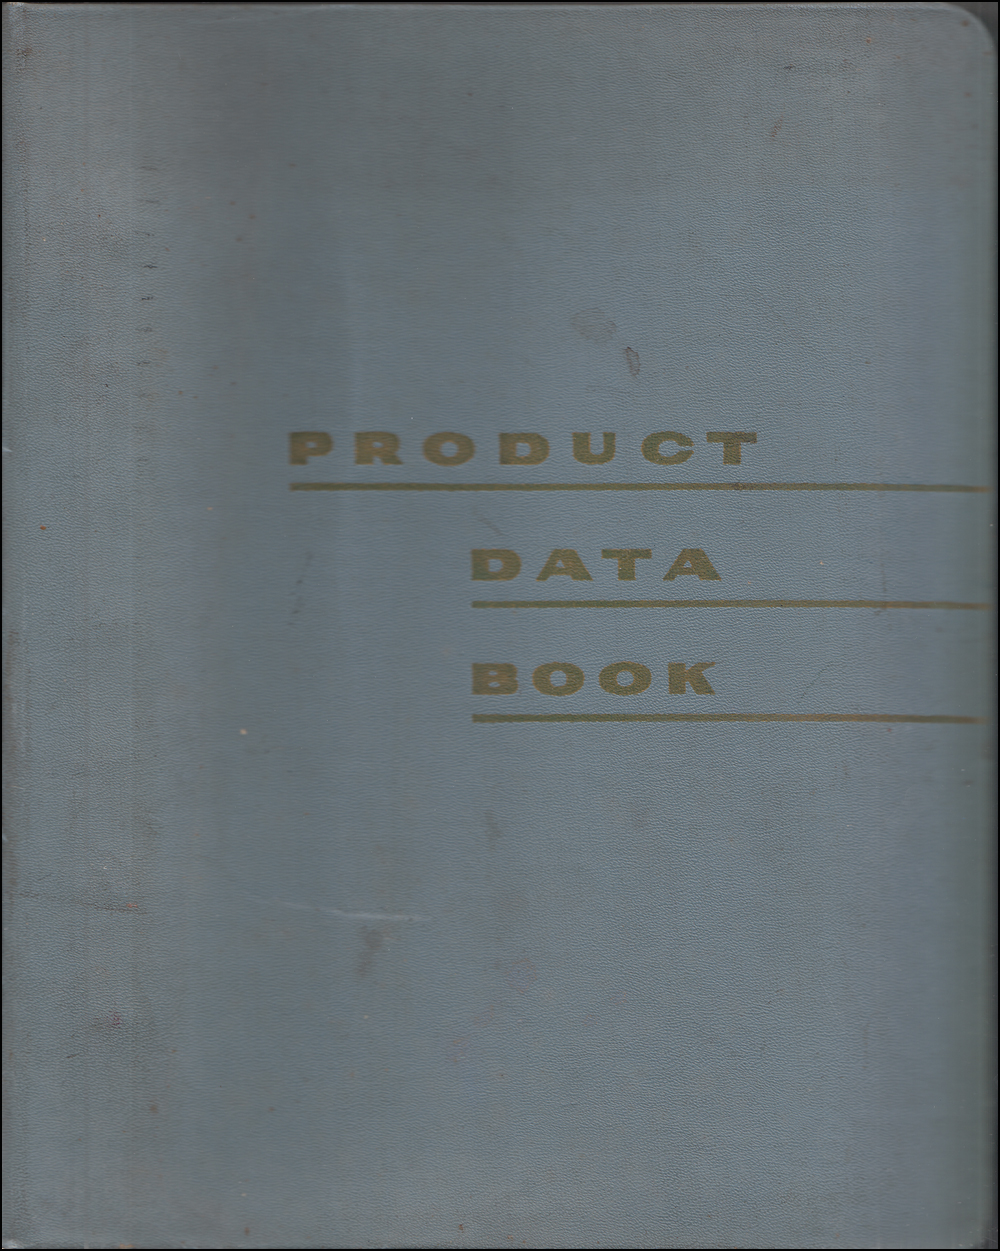 1966 Mercury Data Book Original